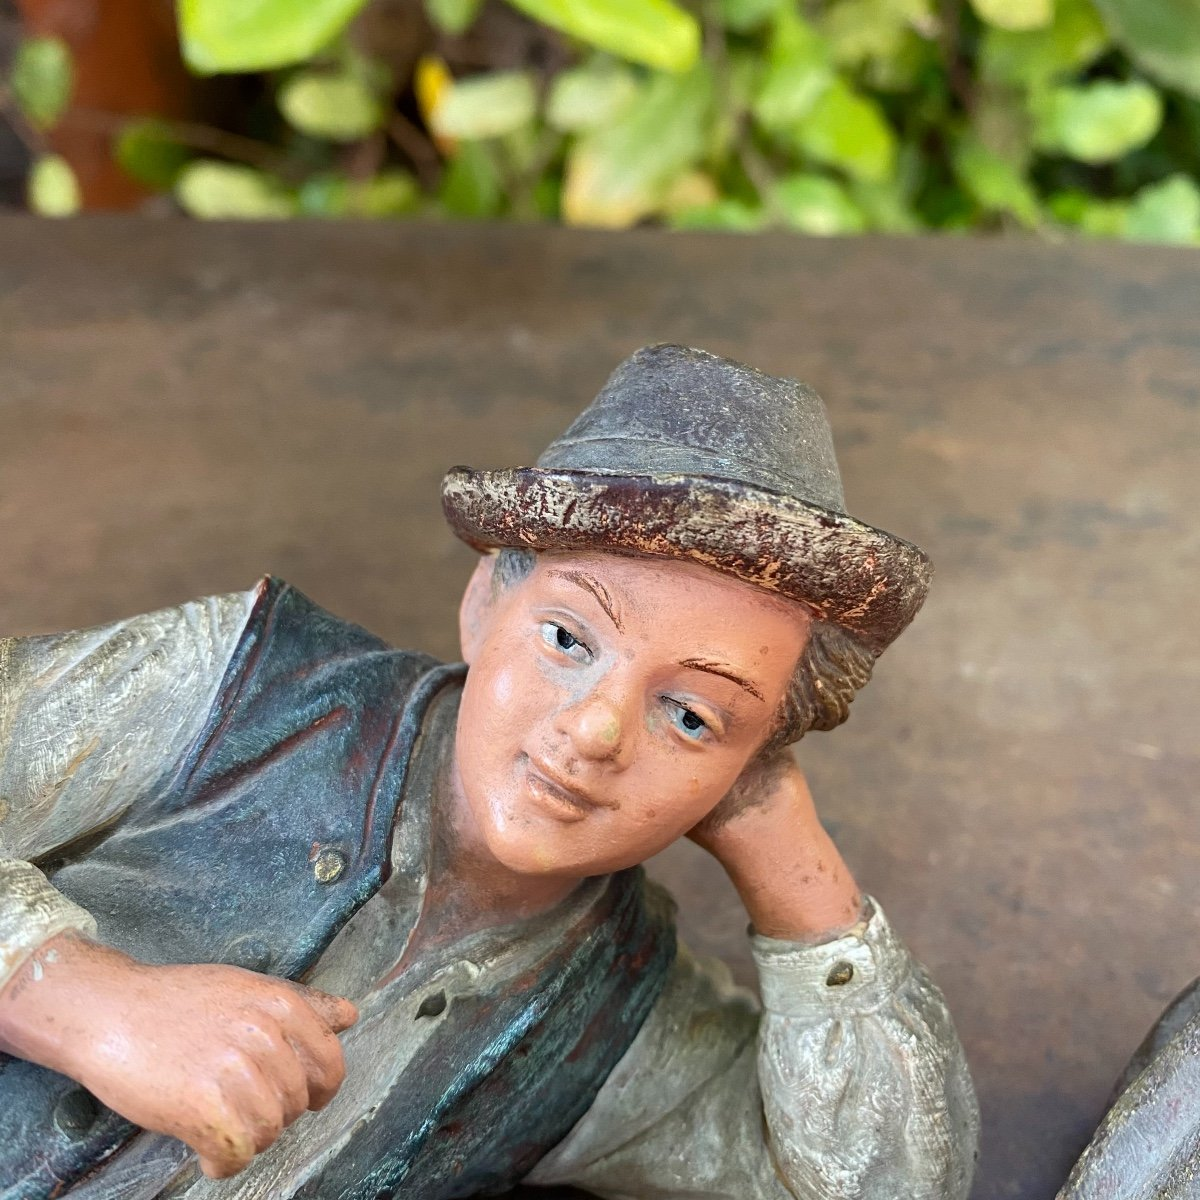 Couple Of Small Peasants In Polychrome Terracotta 19th-photo-3